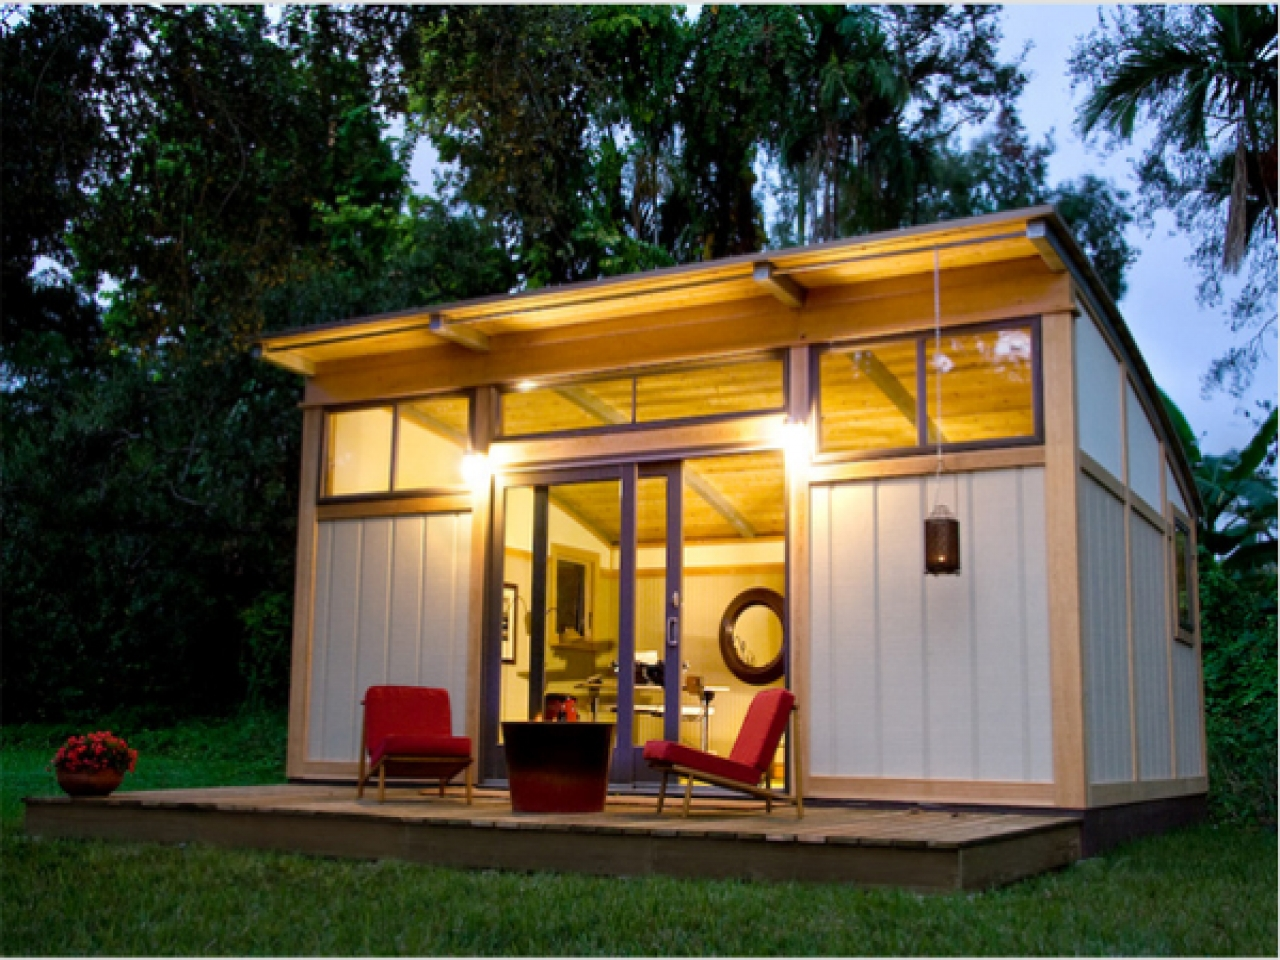 Small modular cabins and cottages small prefab cabins for Small modular cabins and cottages